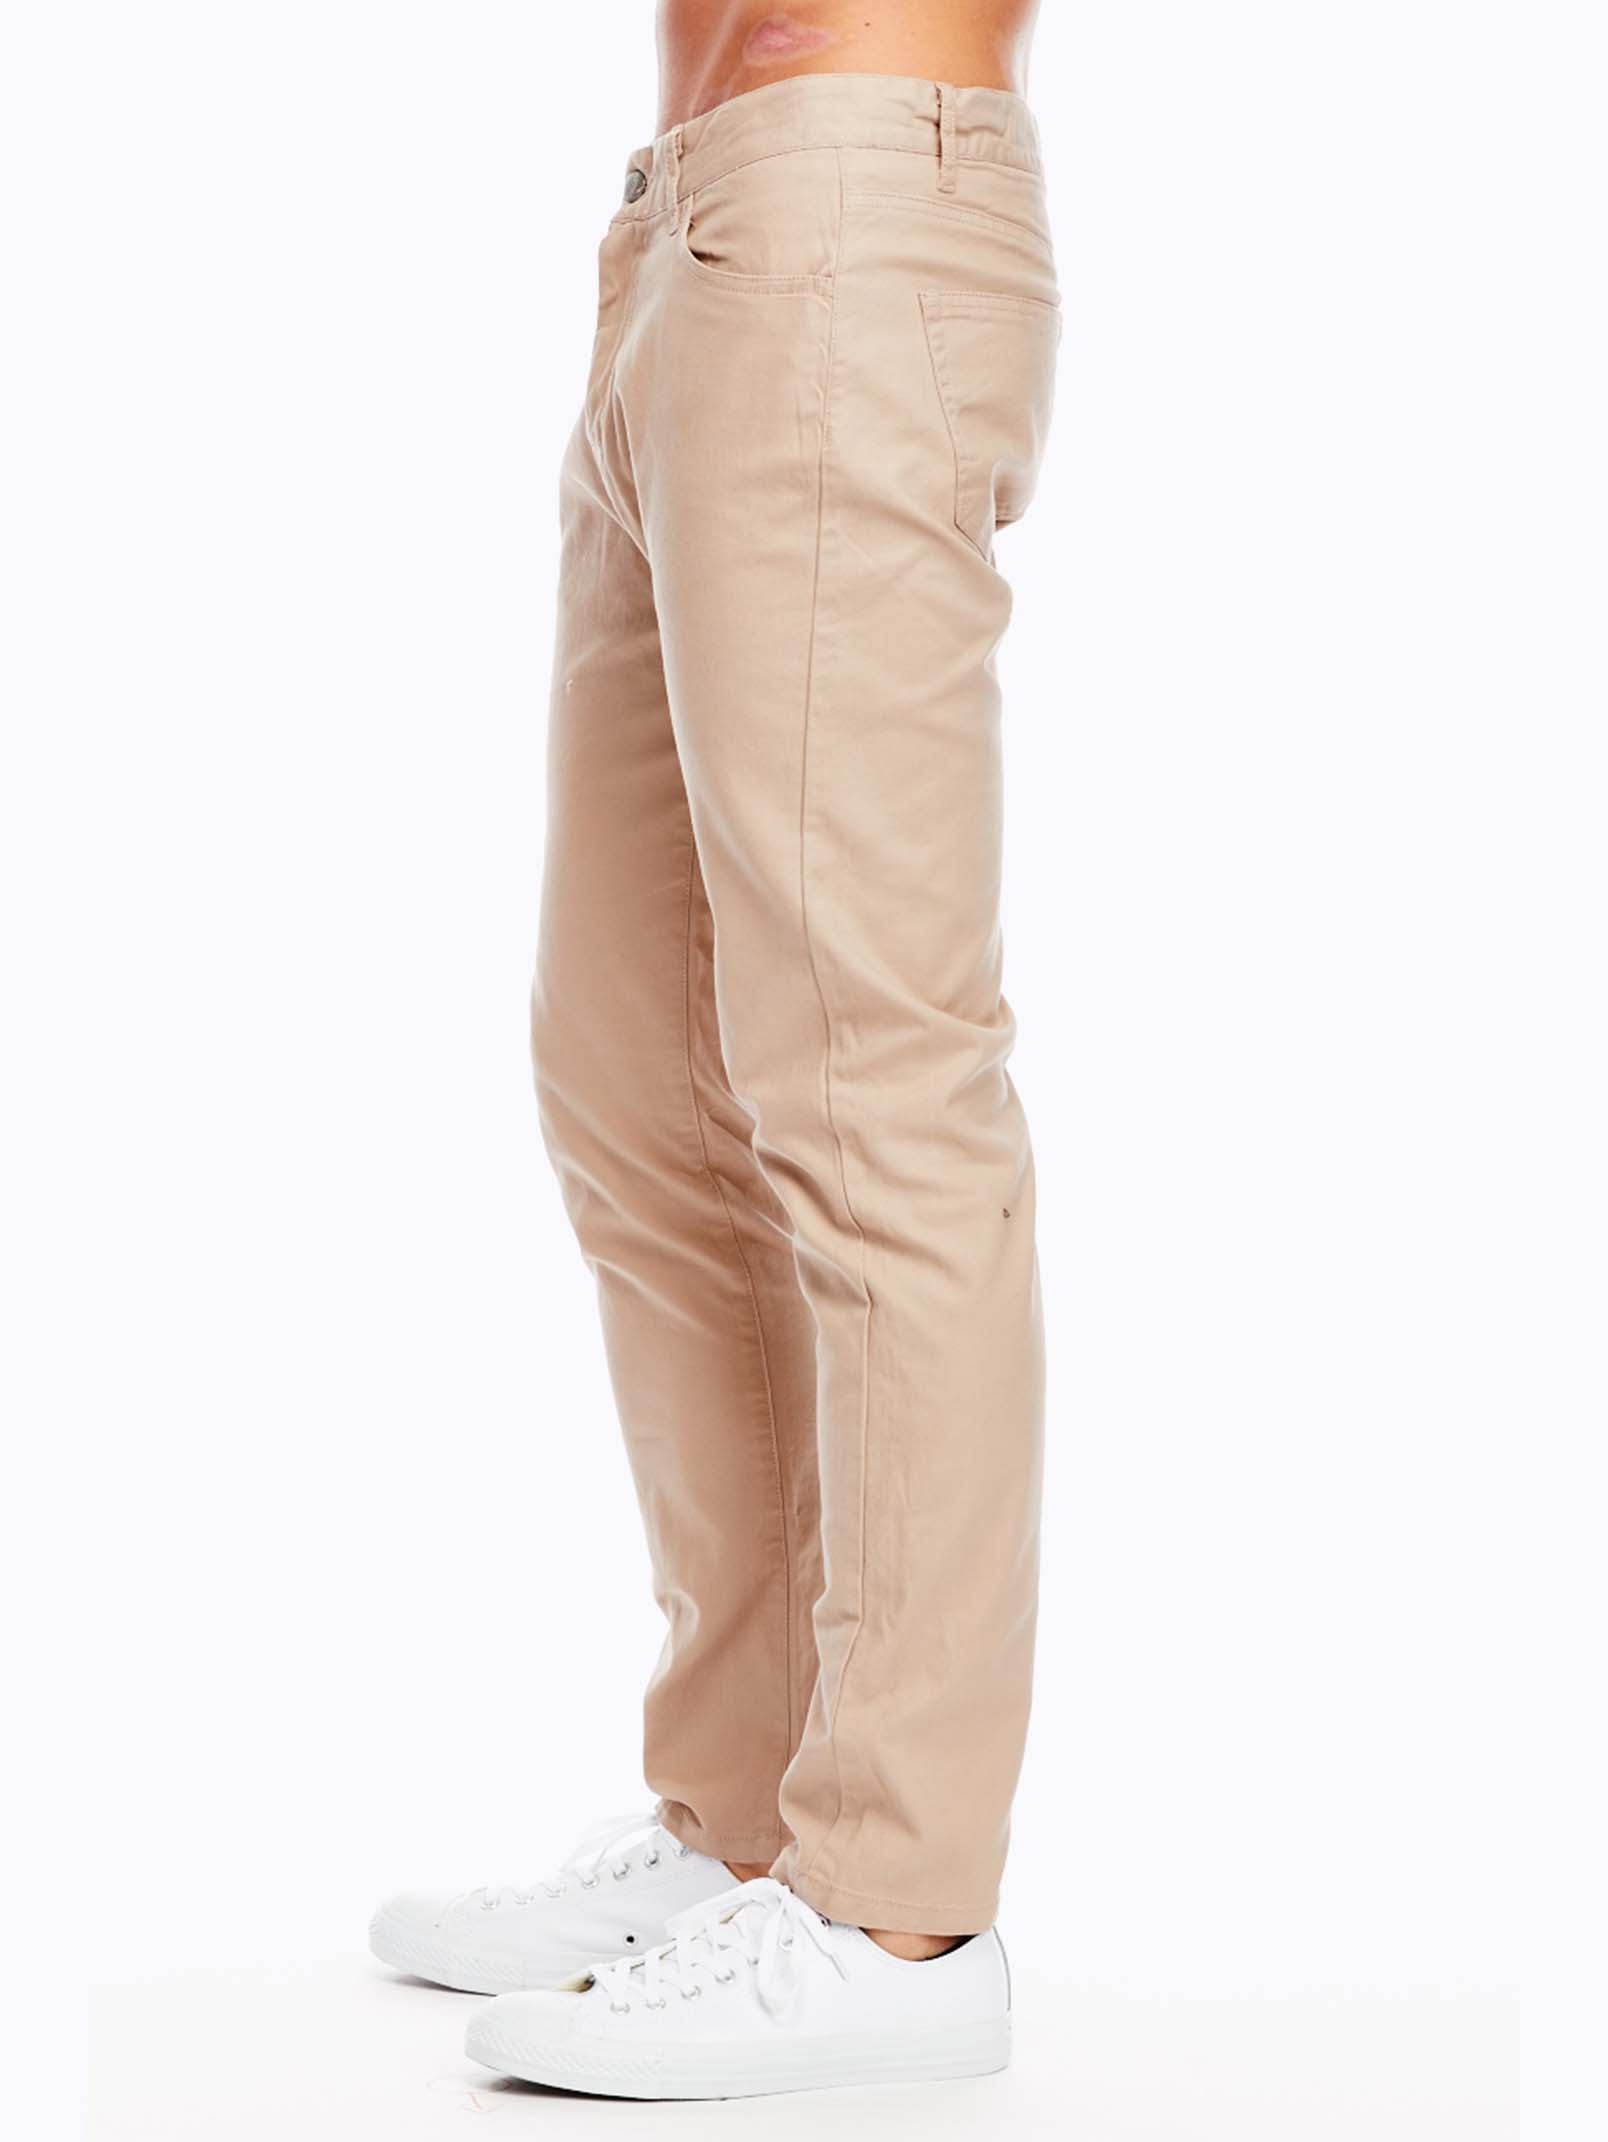 Nudie Jeans Co. brings its jeans-making expertise to these slim-fit khakis. The narrow hip breaks to a straight leg from the knee to the ankle. A touch of stretch for added comfort. 5-pocket styling. Button closure and zip fly. Fabric: Stretch twill. 97% cotton/3% elastane.